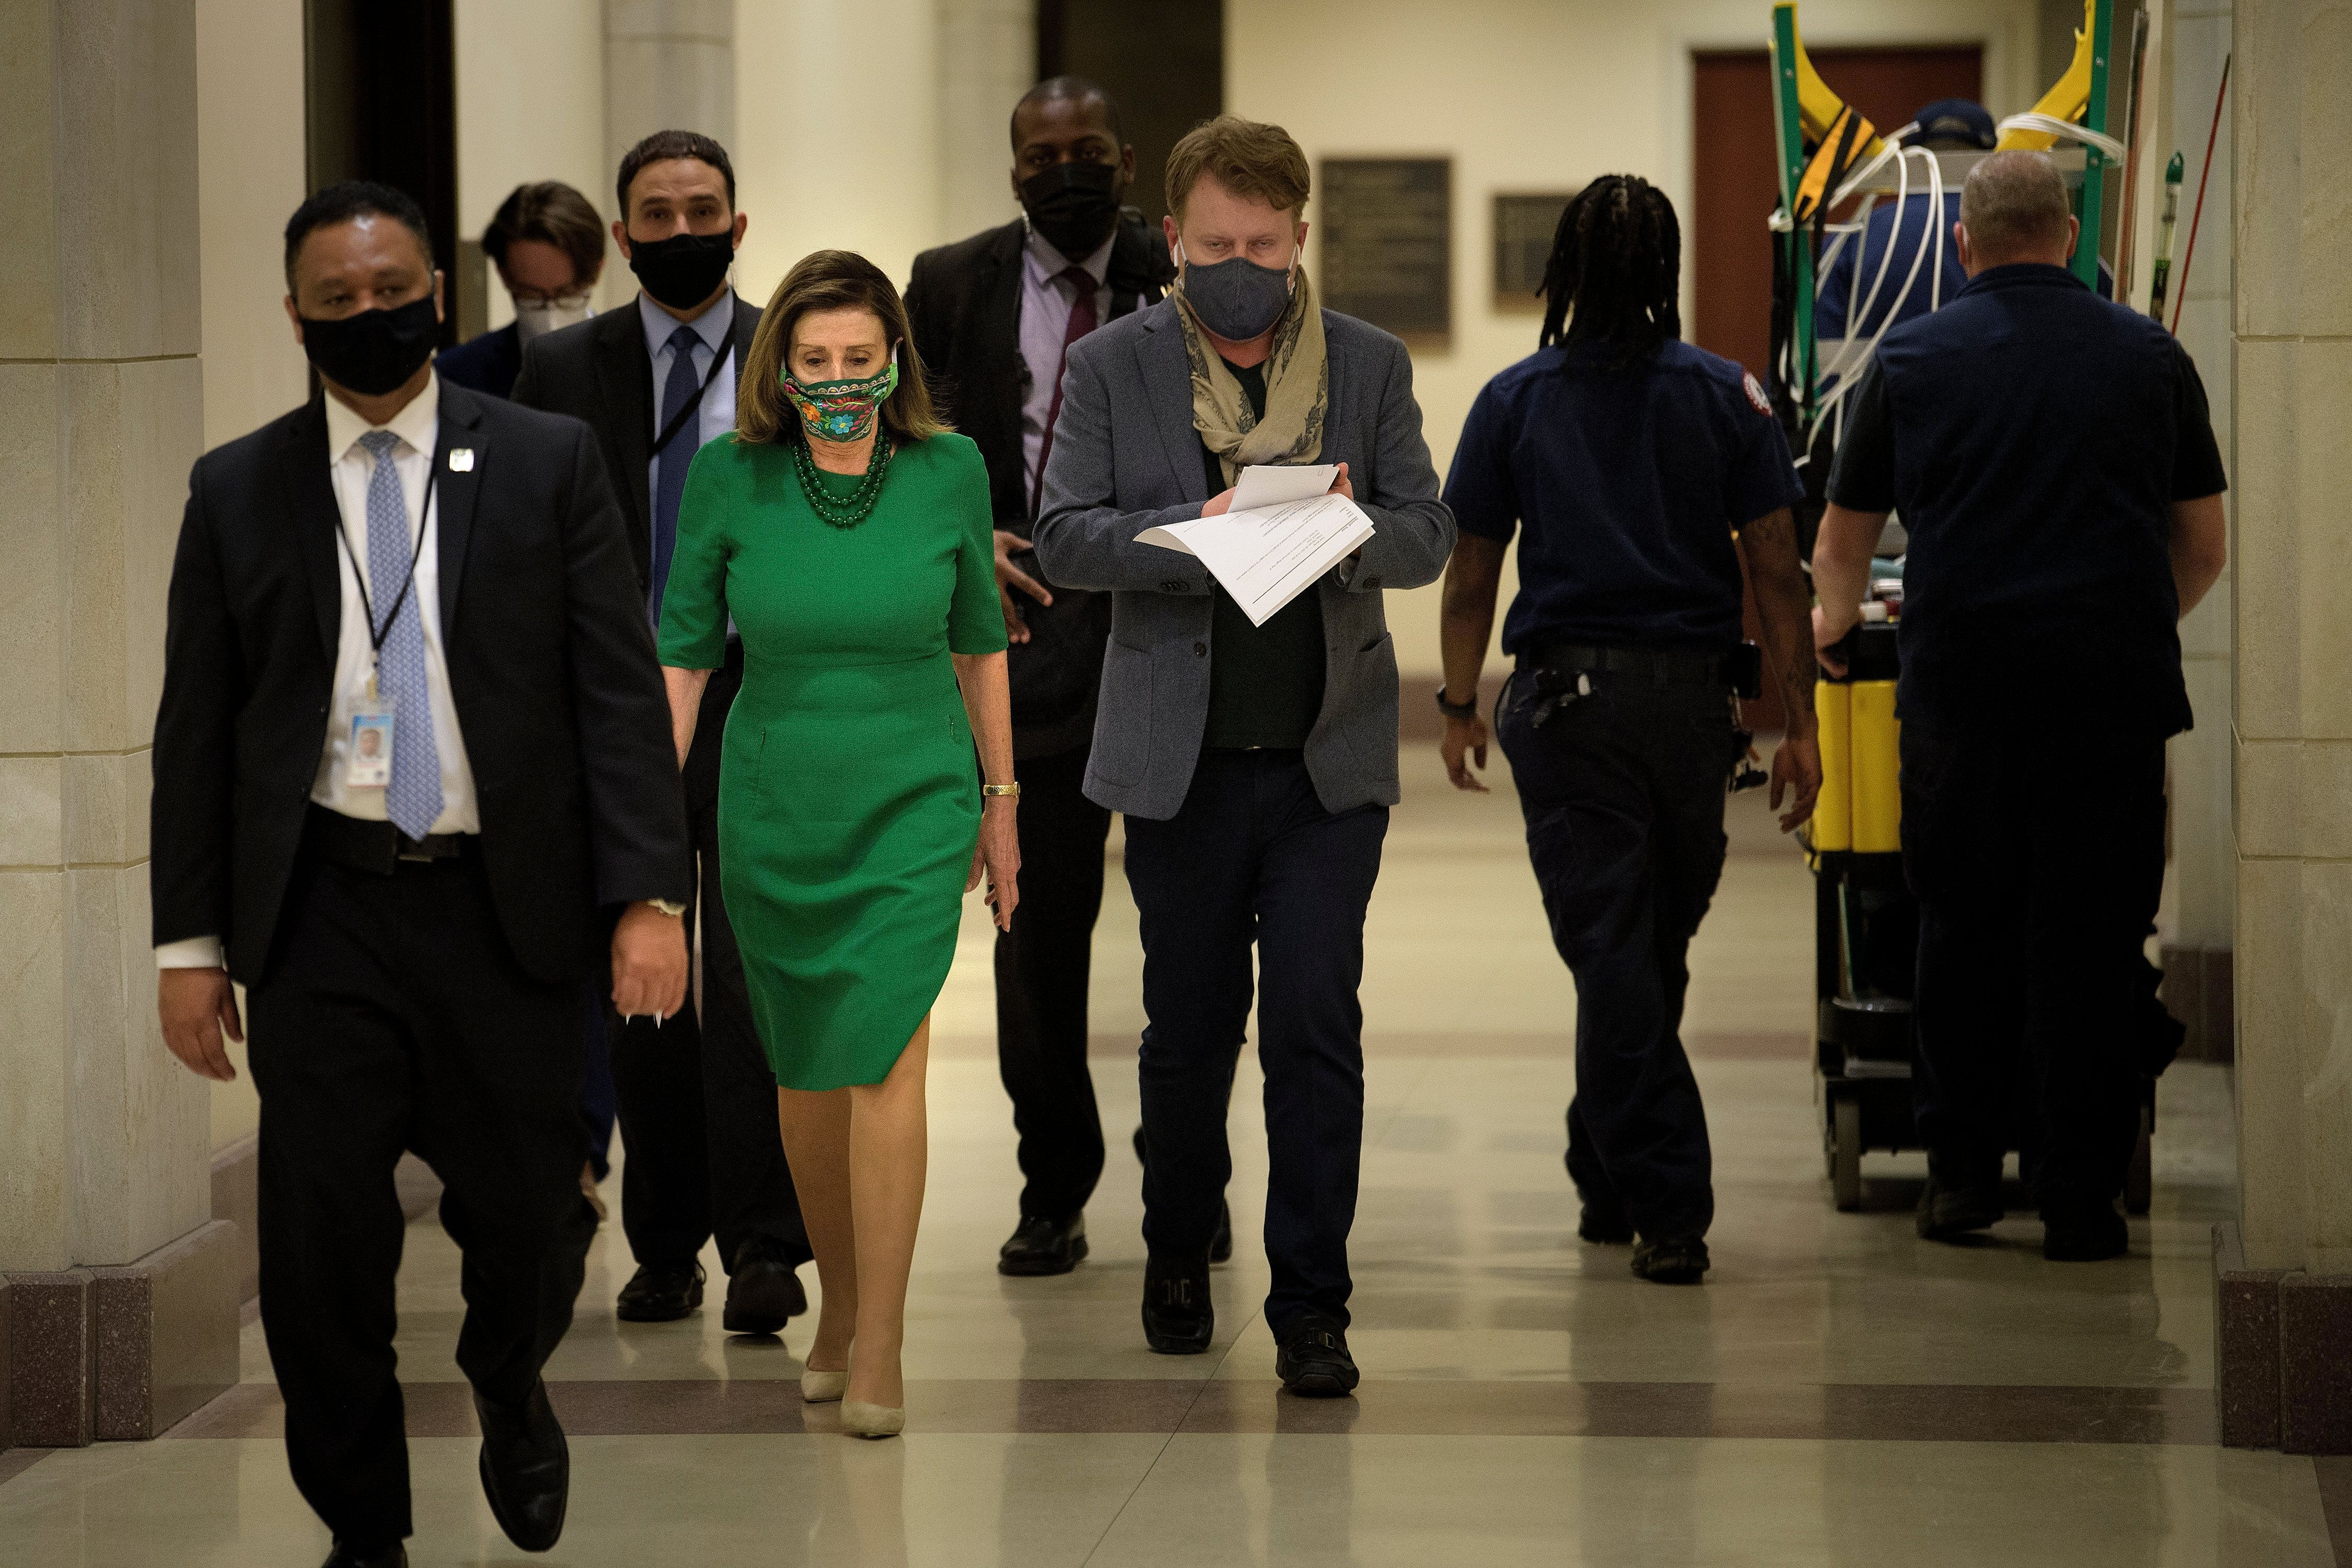 Speaker of the House Nancy Pelosi (D-Calif.) walks to a news conference Friday about the COVID-19 financial relief package an